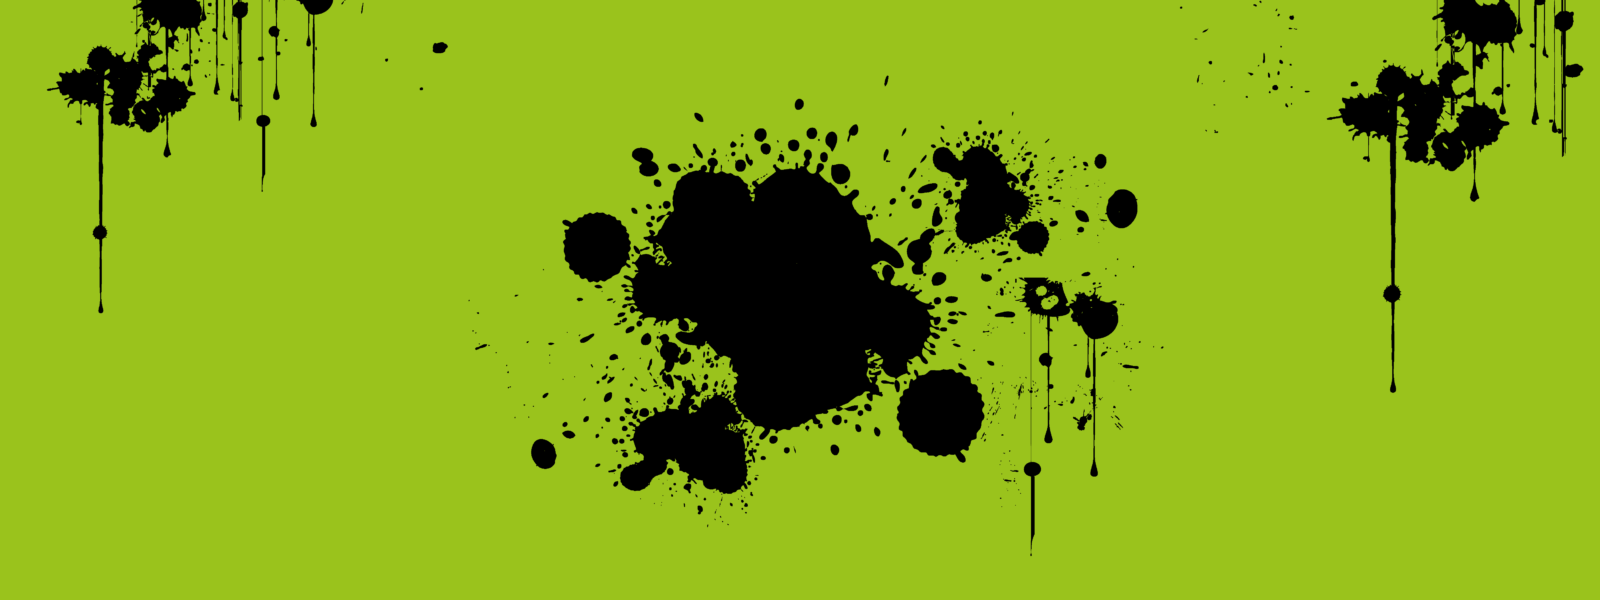 Ink spatters